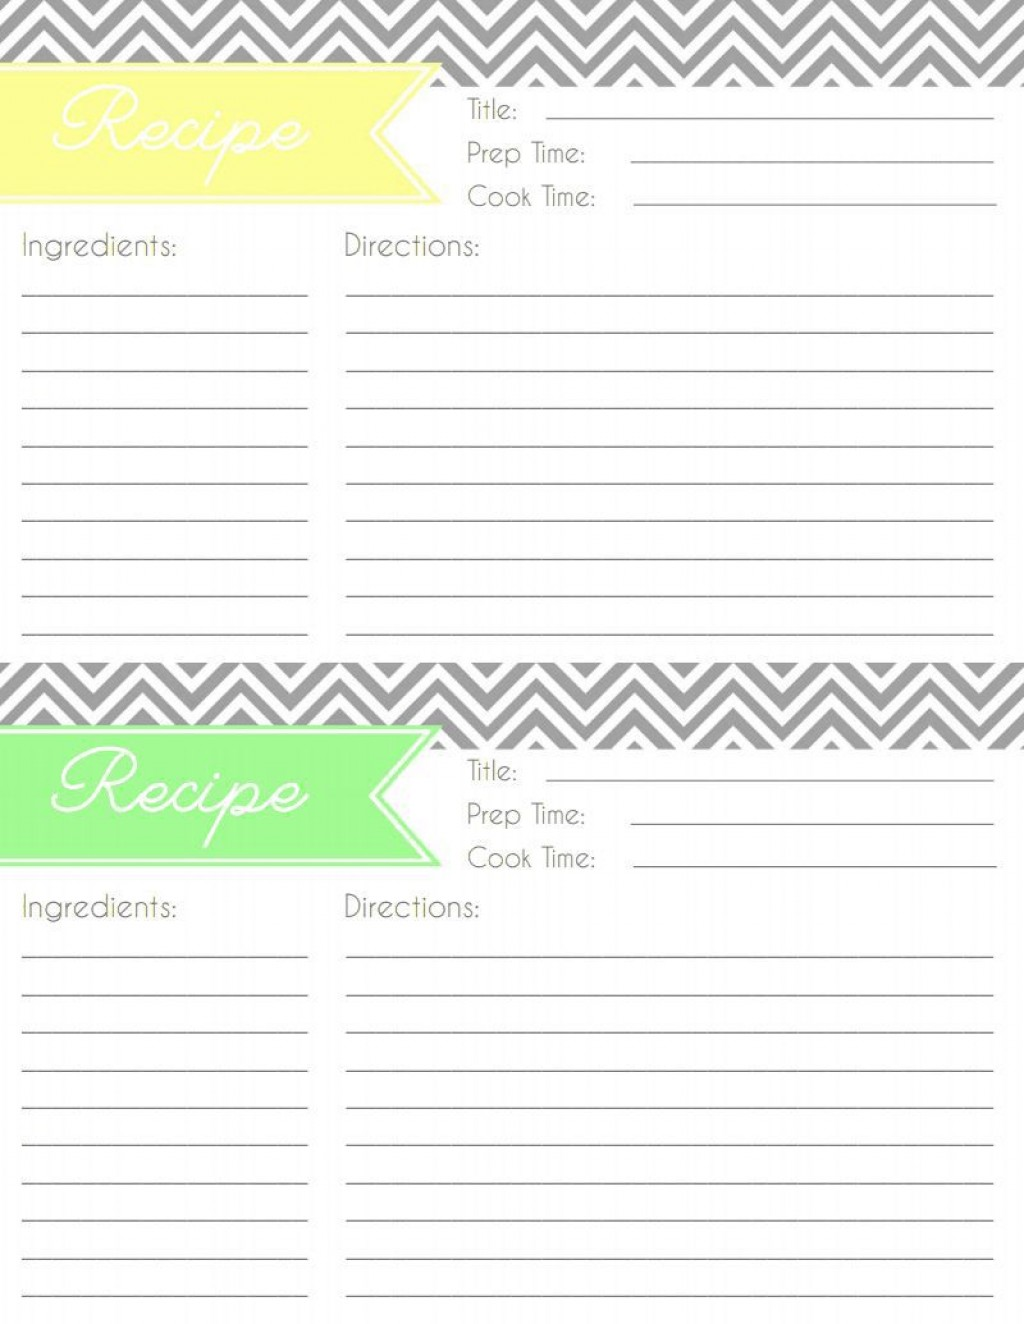 005 Formidable Fillable Recipe Card Template Idea  For Word FreeLarge